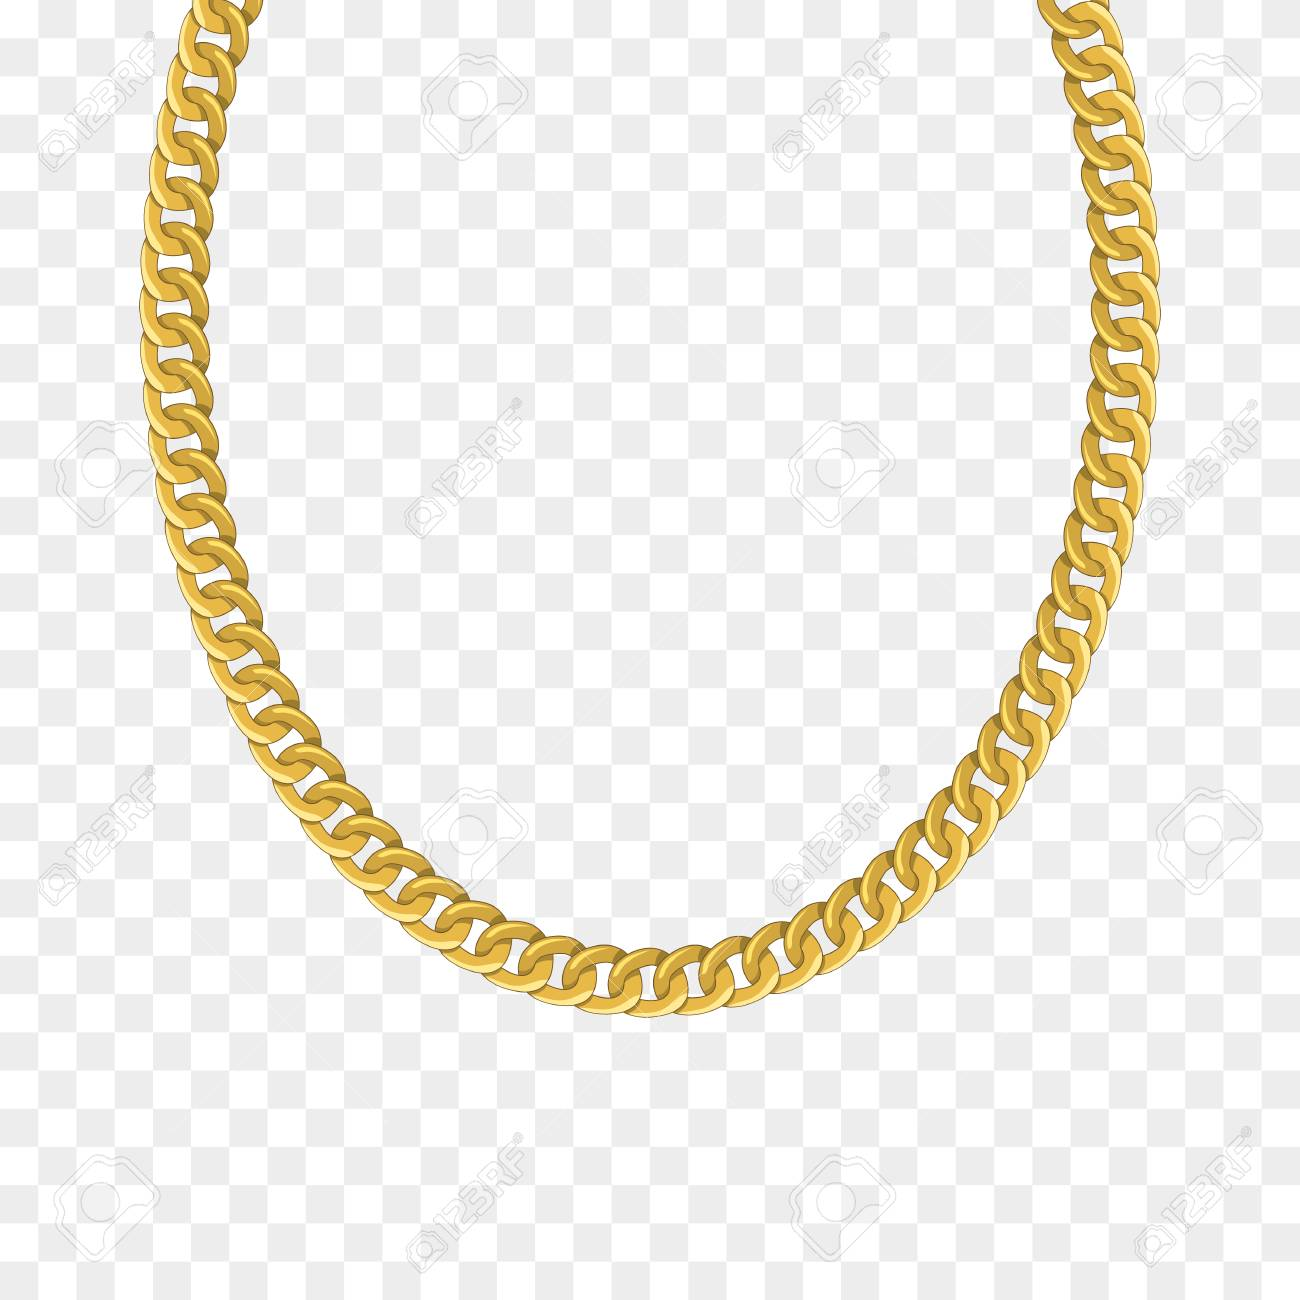 Gold Chain Isolated Vector Illustration Of Necklace Royalty Free Cliparts Vectors And Stock Illustration Image 125096277